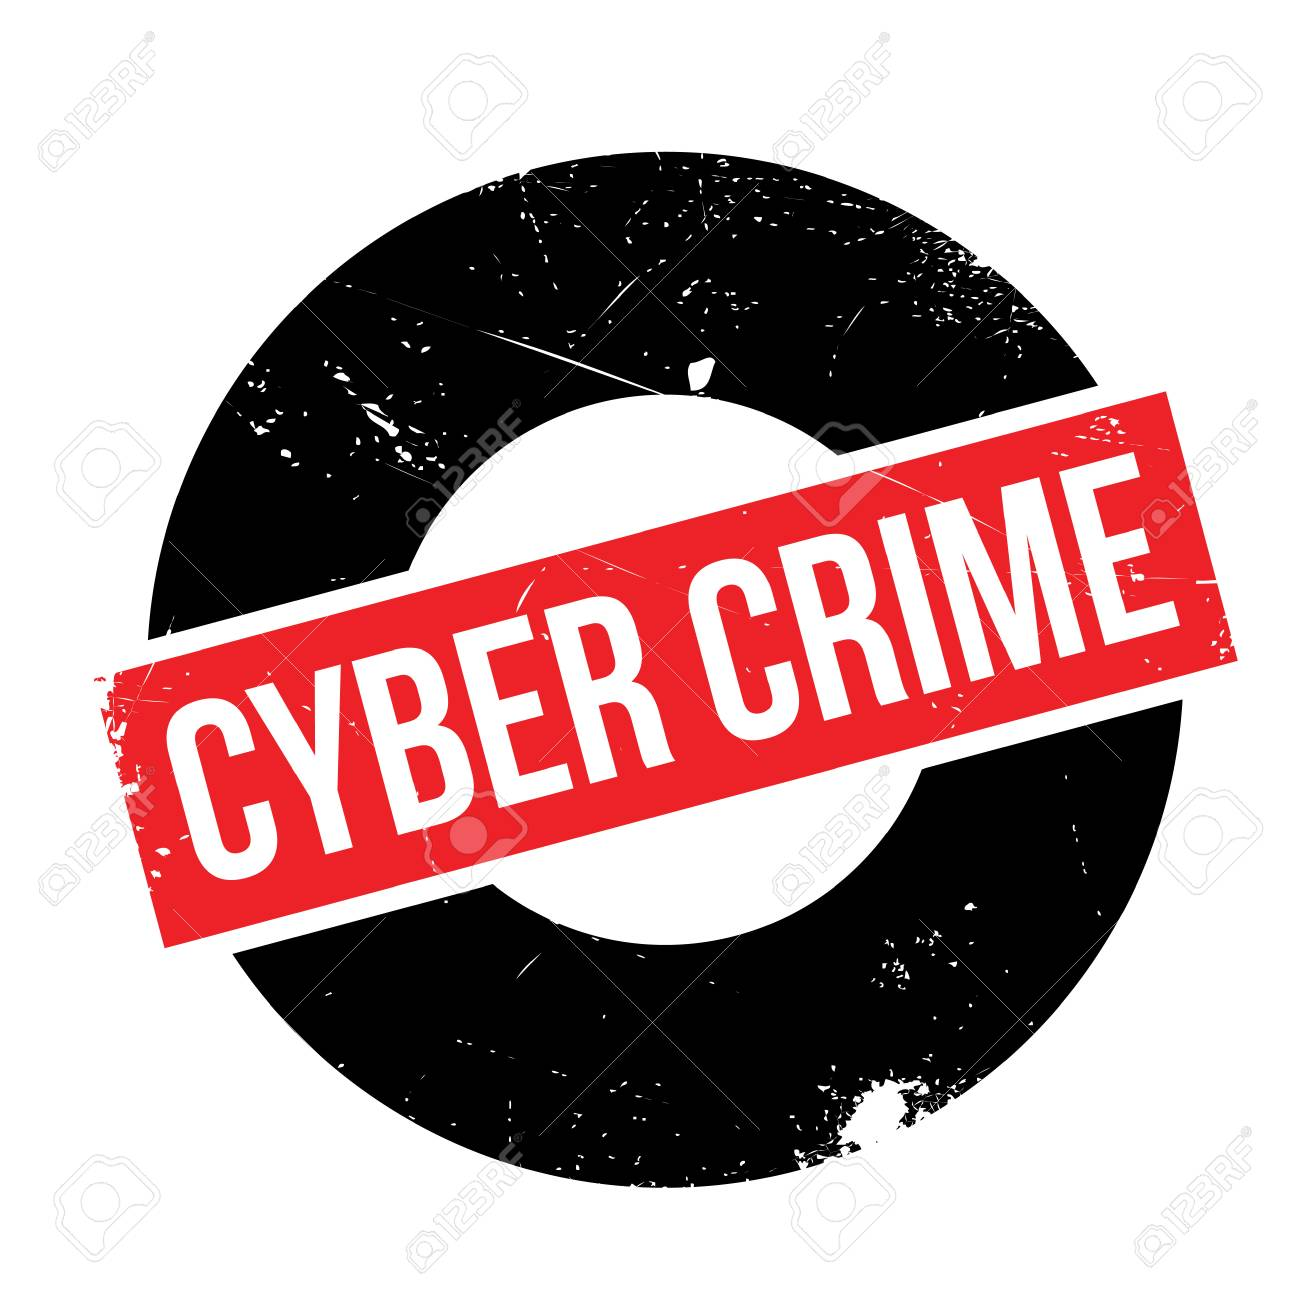 Cyber crime rubber stamp grunge design with dust scratches cyber crime rubber stamp grunge design with dust scratches effects can be easily removed sciox Images